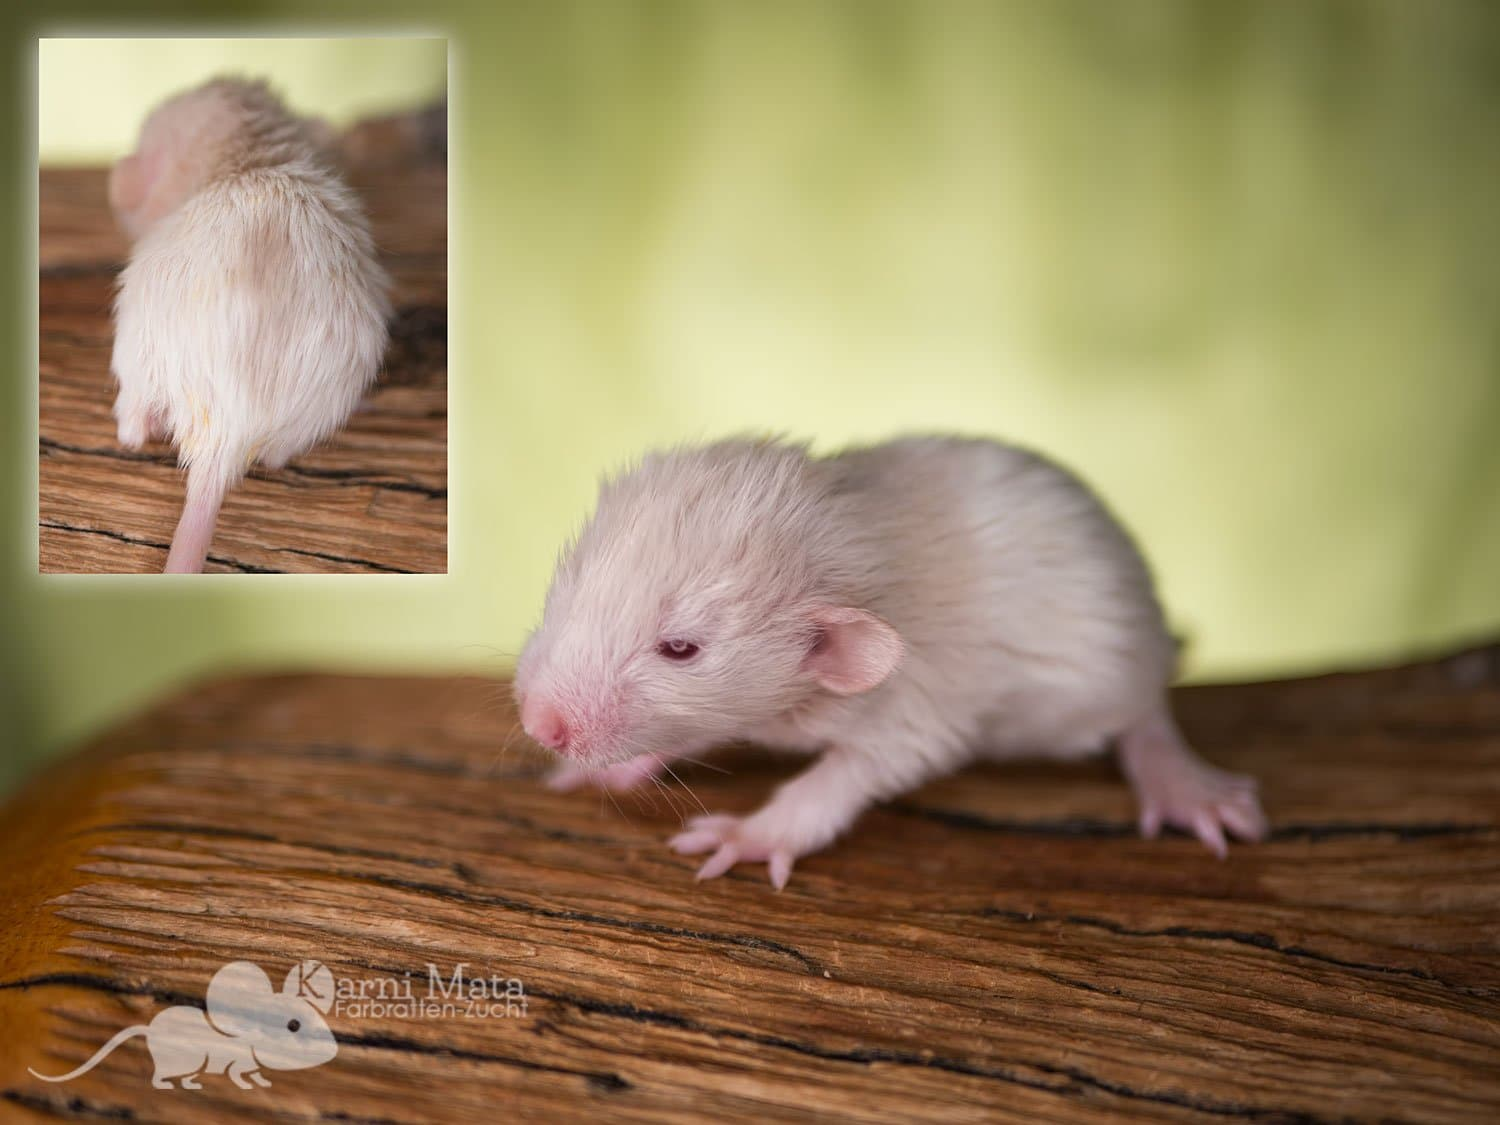 Ratte Immanuel Kant, Silver (?) Fawn oder Champagne Variegated Mismarked Harley Dumbo